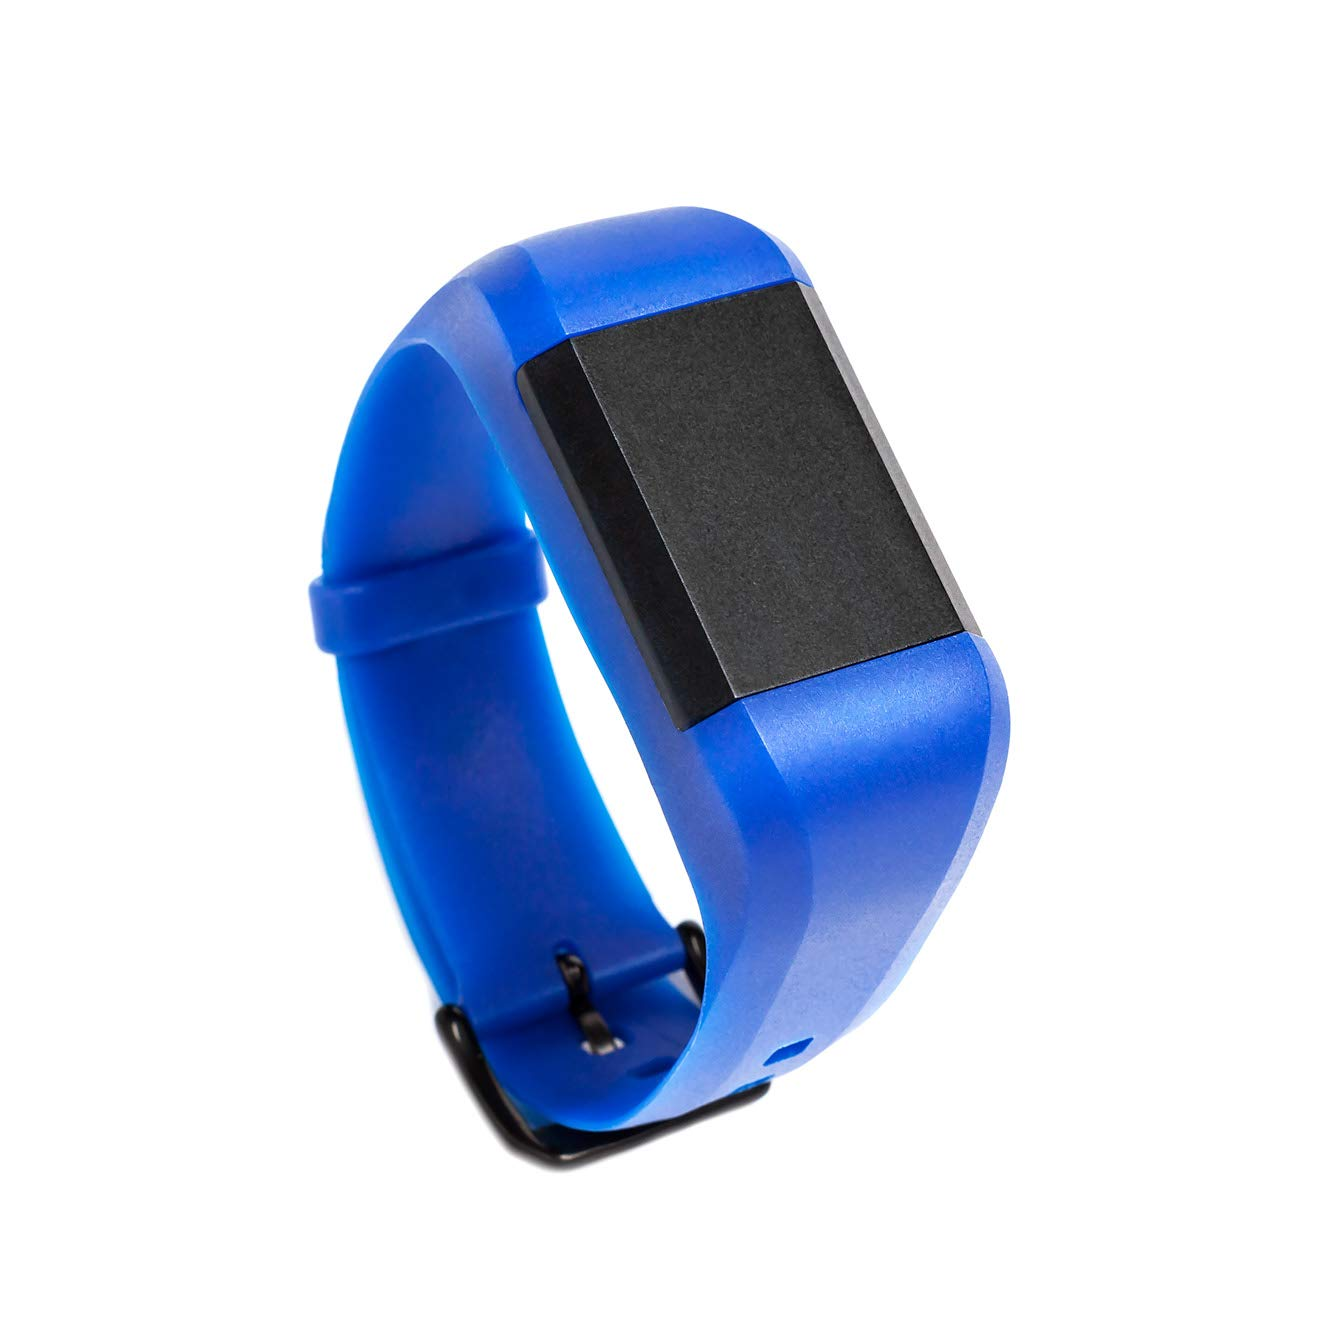 Revibe Connect: Vibration Reminder Wristband - Anti-Distraction, Educational Technology, Timer Tool (Connet Small, Blue)